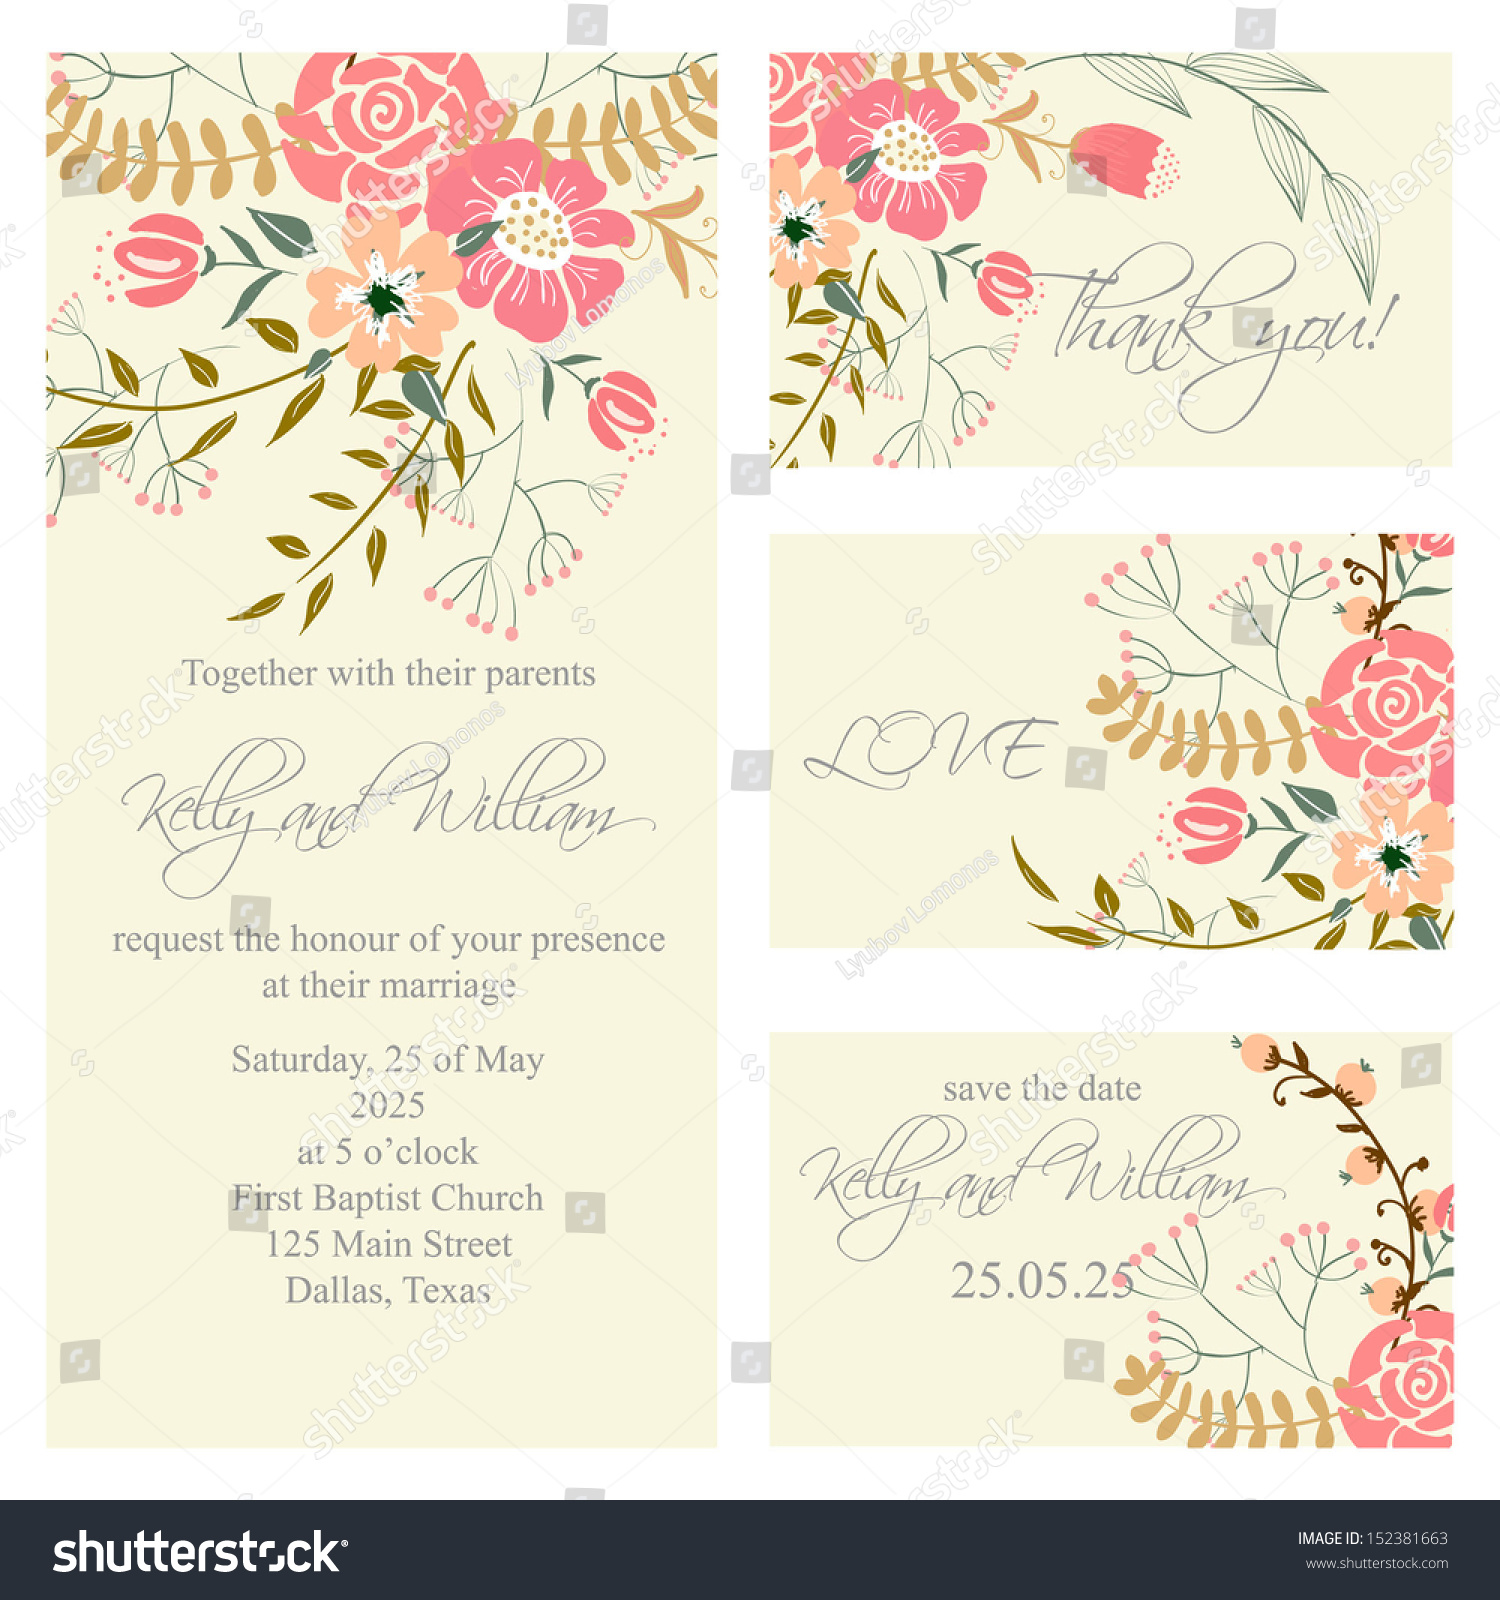 Ideas Thank You Note For Wedding Invitation wedding invitation thank you card save the date cards to a lightbox